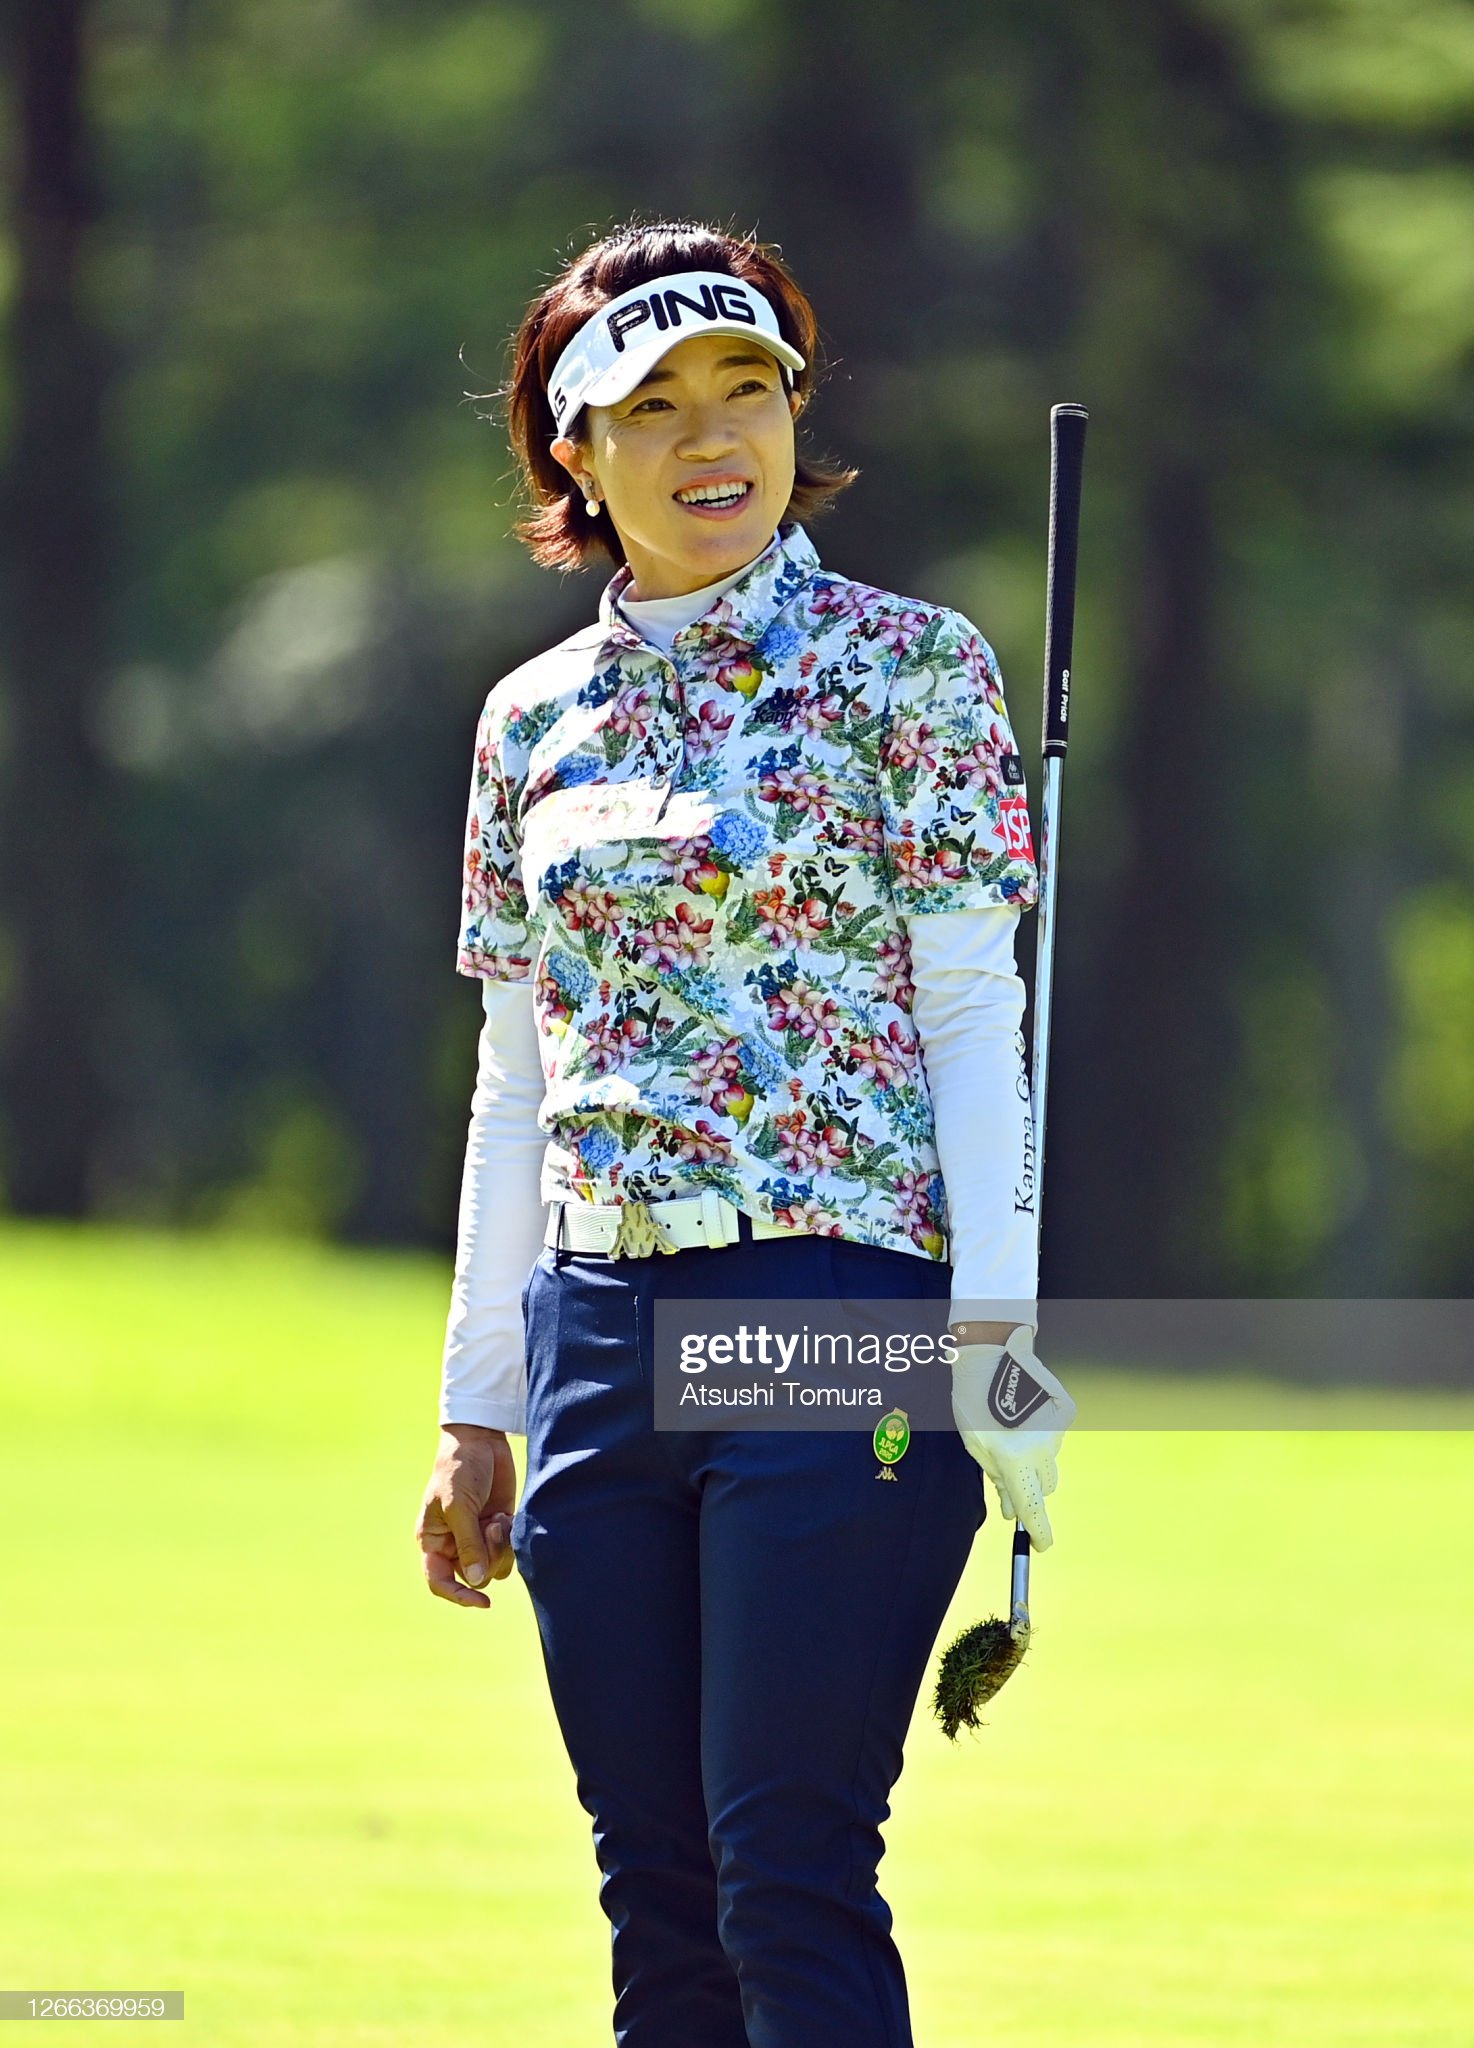 https://media.gettyimages.com/photos/shiho-oyama-of-japan-reacts-after-her-second-shot-on-the-4th-hole-picture-id1266369959?s=2048x2048